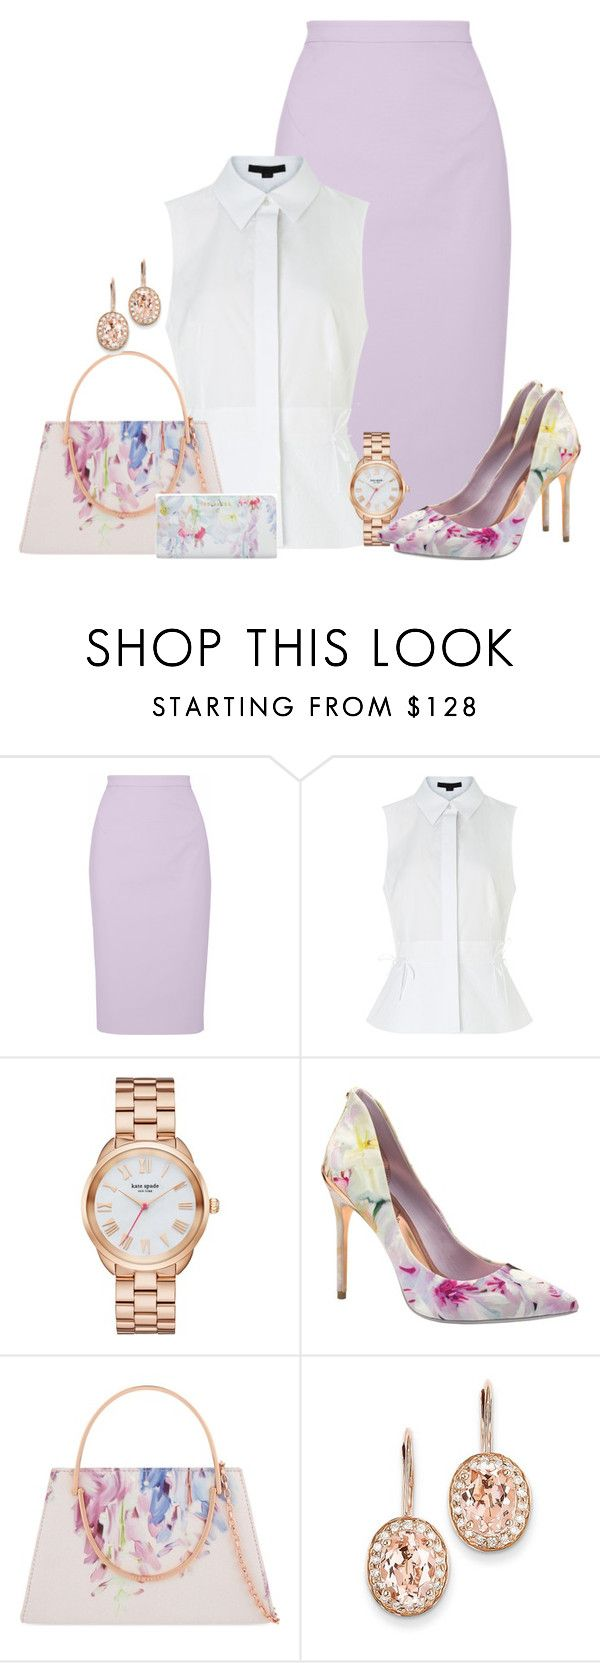 """Ted Baker"" by kimzarad1 ❤ liked on Polyvore featuring Raoul, Alexander Wang, Kate Spade, Ted Baker and Kevin Jewelers"